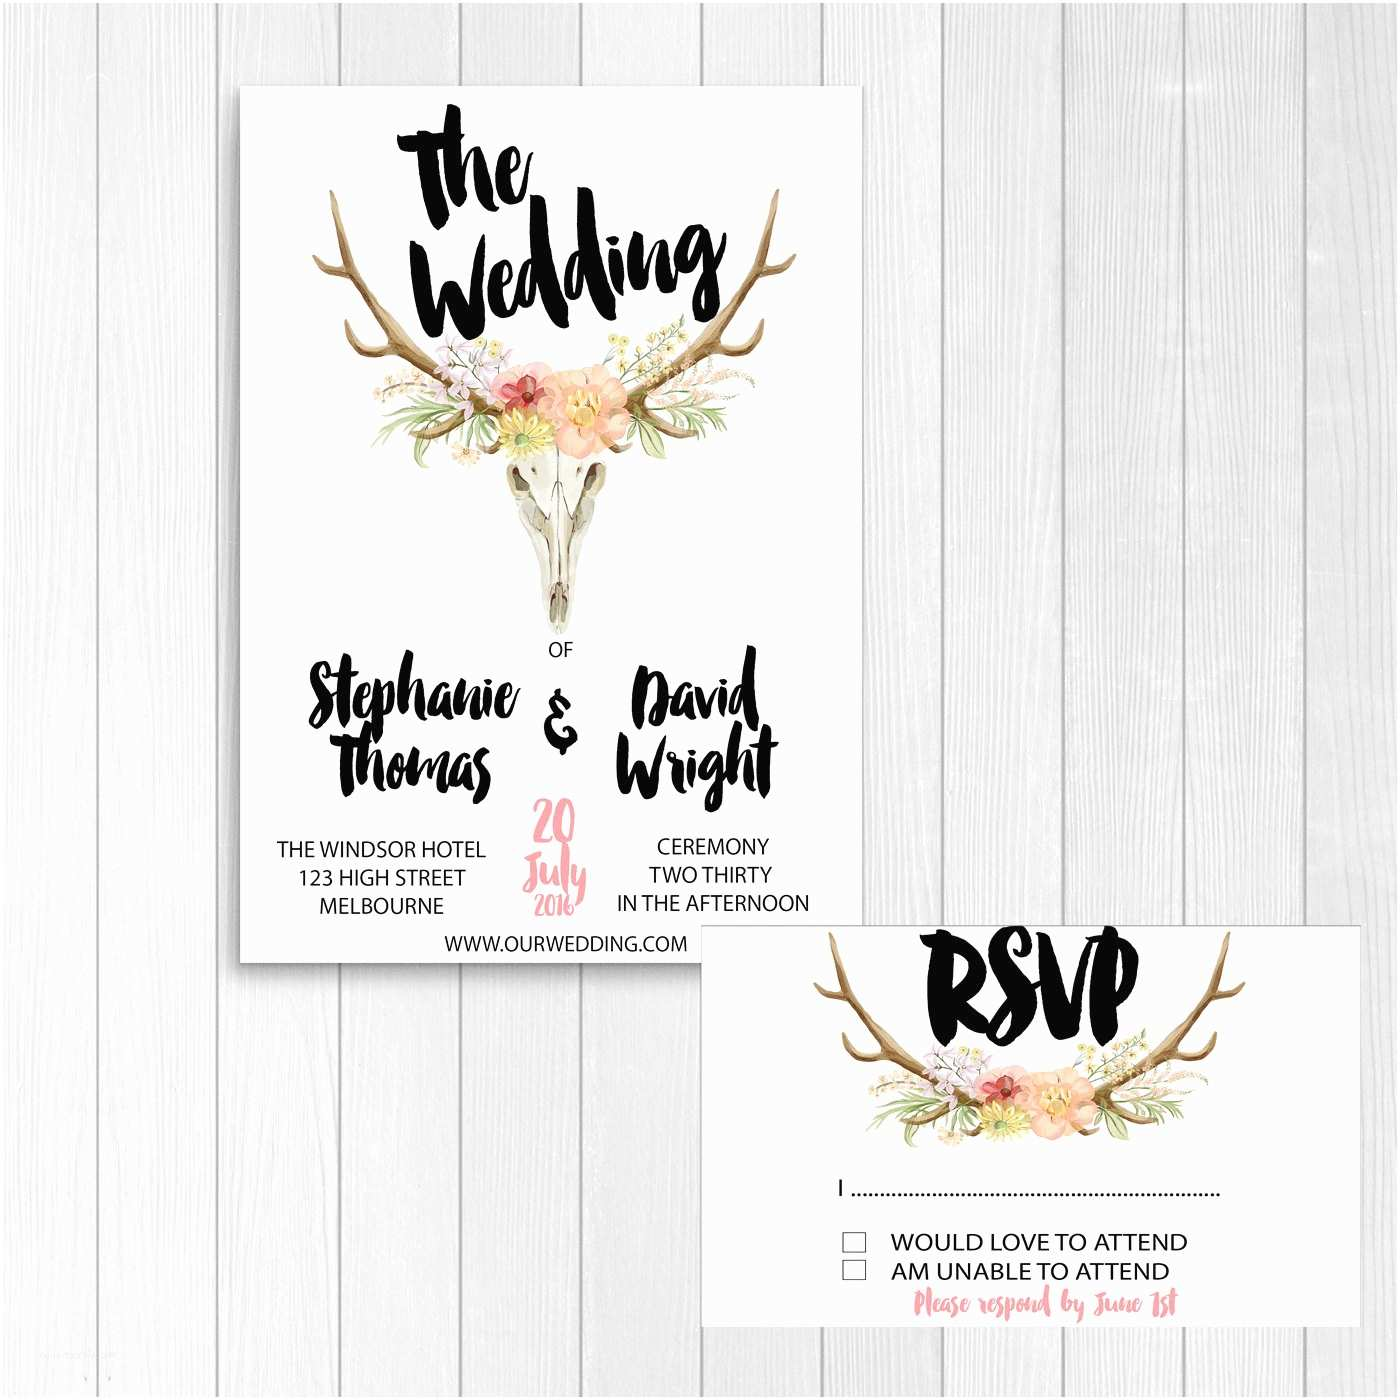 Deer Antler Wedding Invitations Deer Wedding Invitation Antlers Wedding Invitation Diy